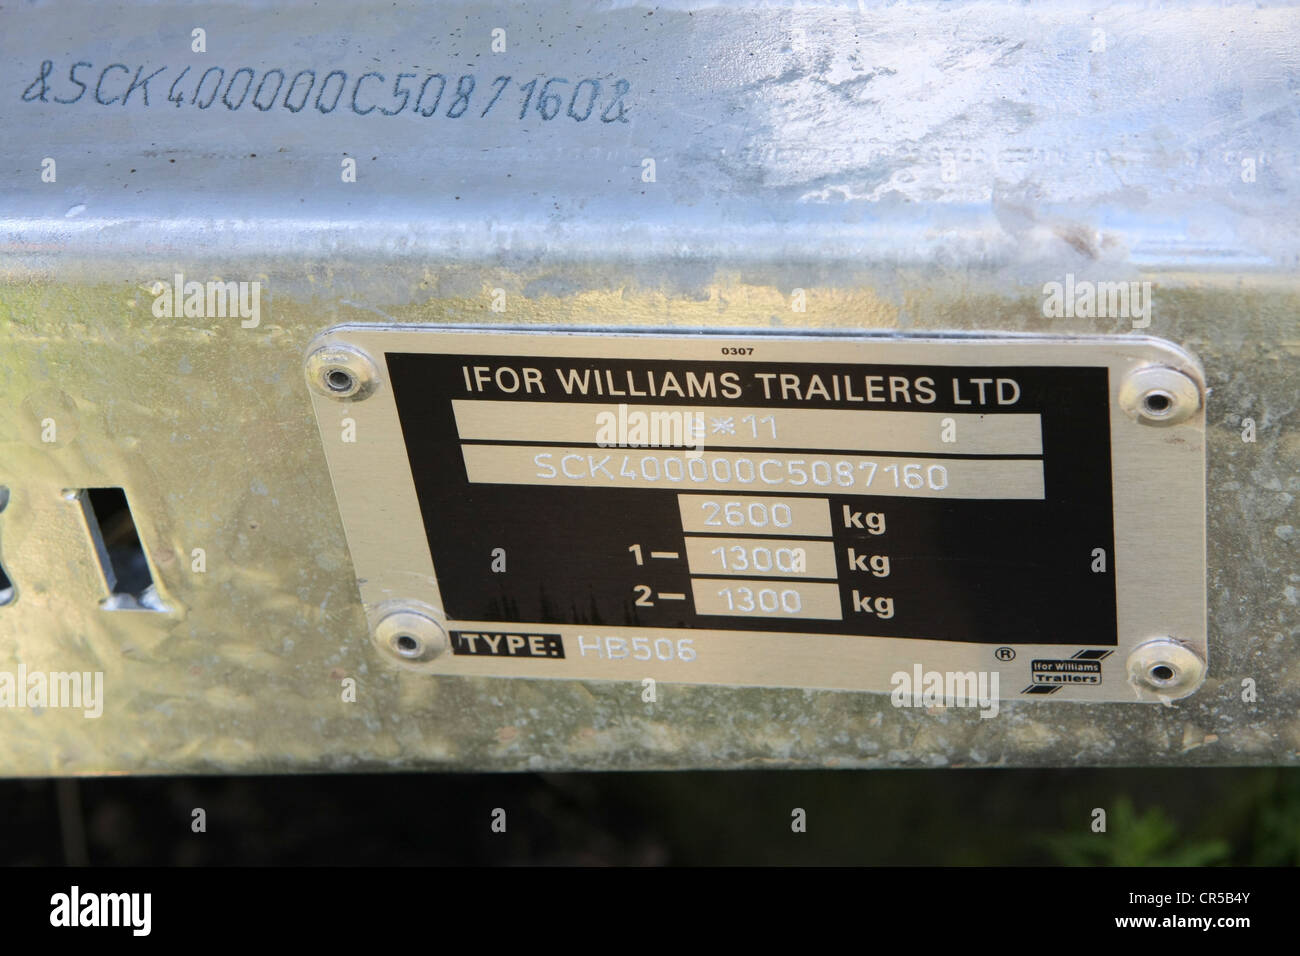 Chassis Plate And Number On An Ifor Williams Horse Trailer